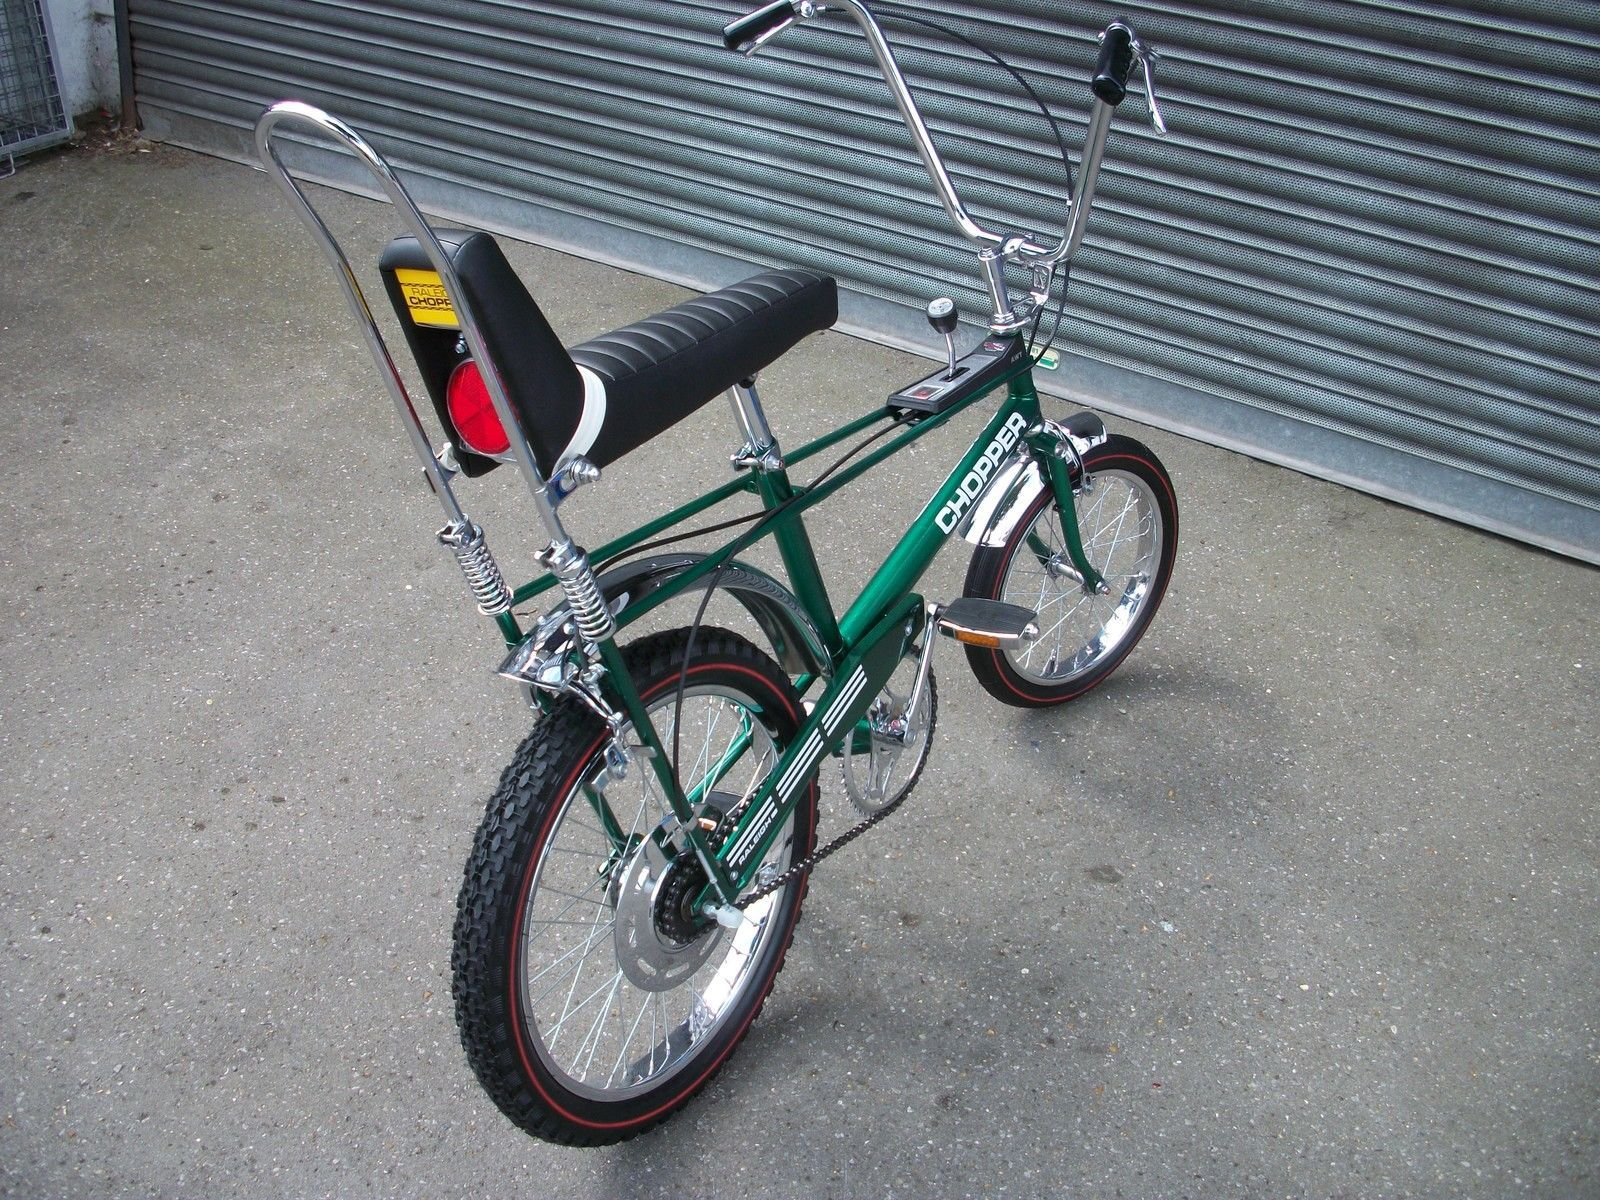 raleigh chopper buzzbikes musclebikes banana seat pinterest choppers and bicycling. Black Bedroom Furniture Sets. Home Design Ideas